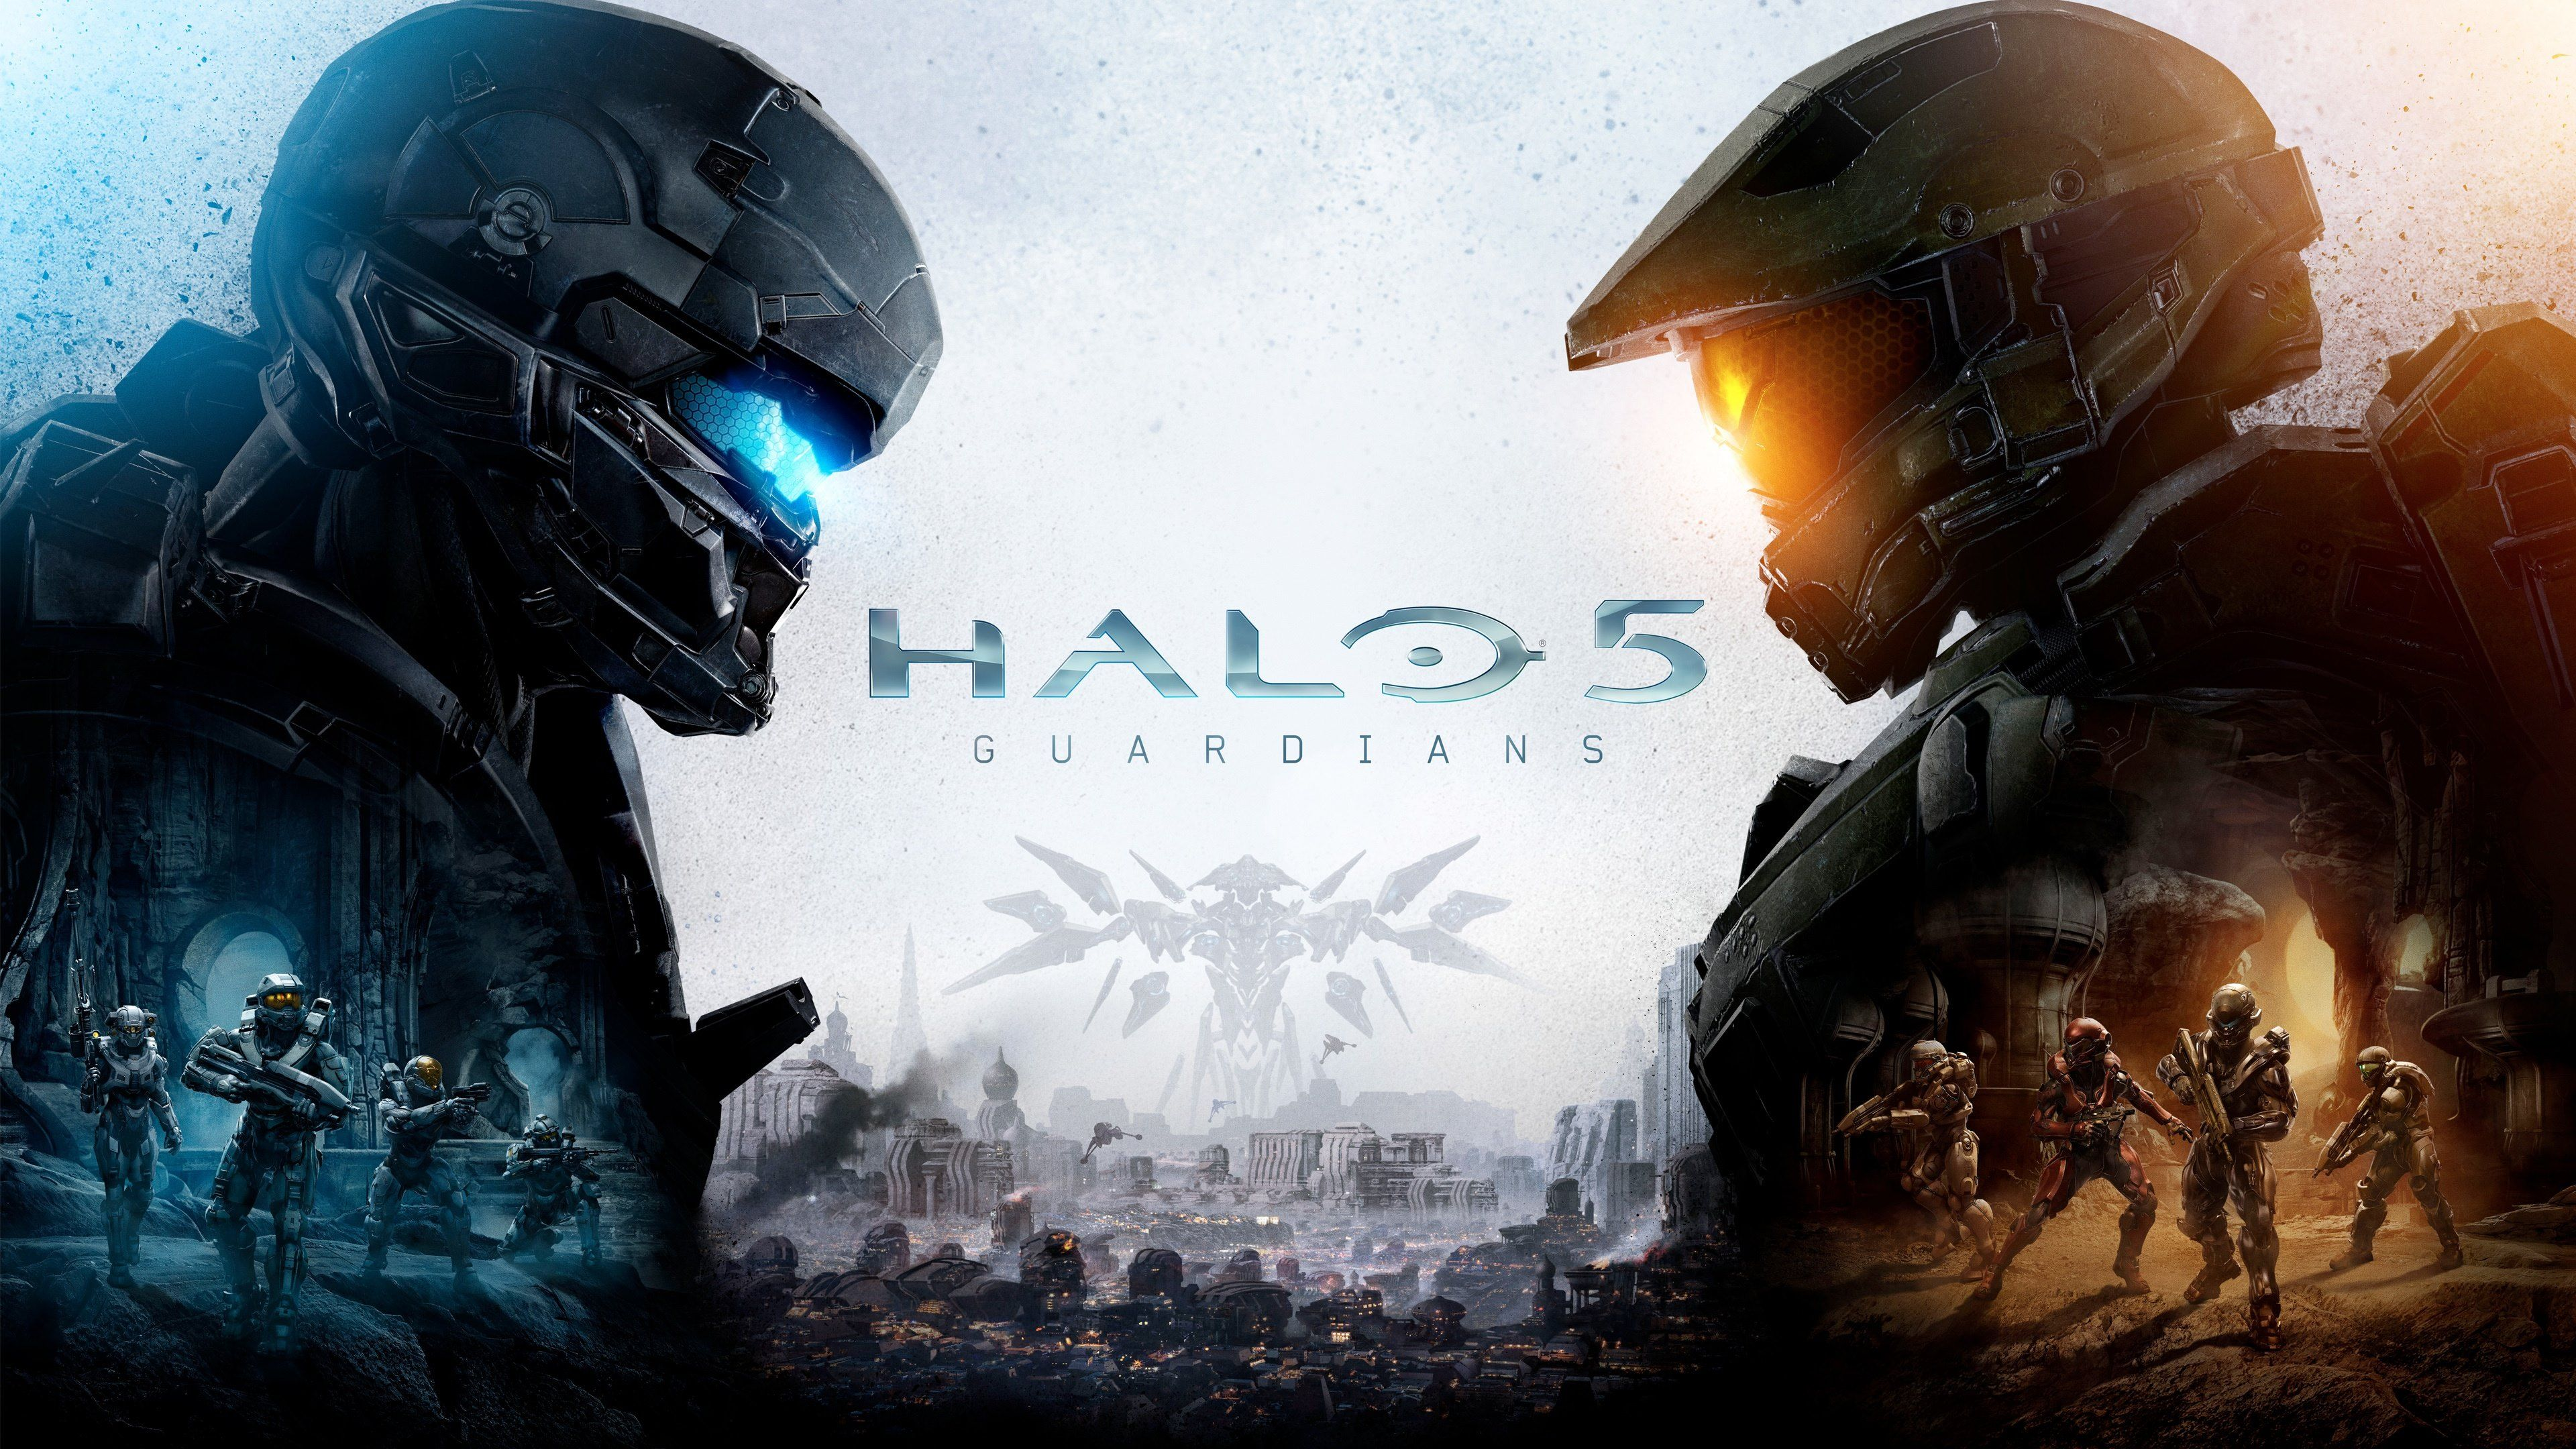 Halo 5 Guardians Game Hd Wallpapers 4k Wallpapers